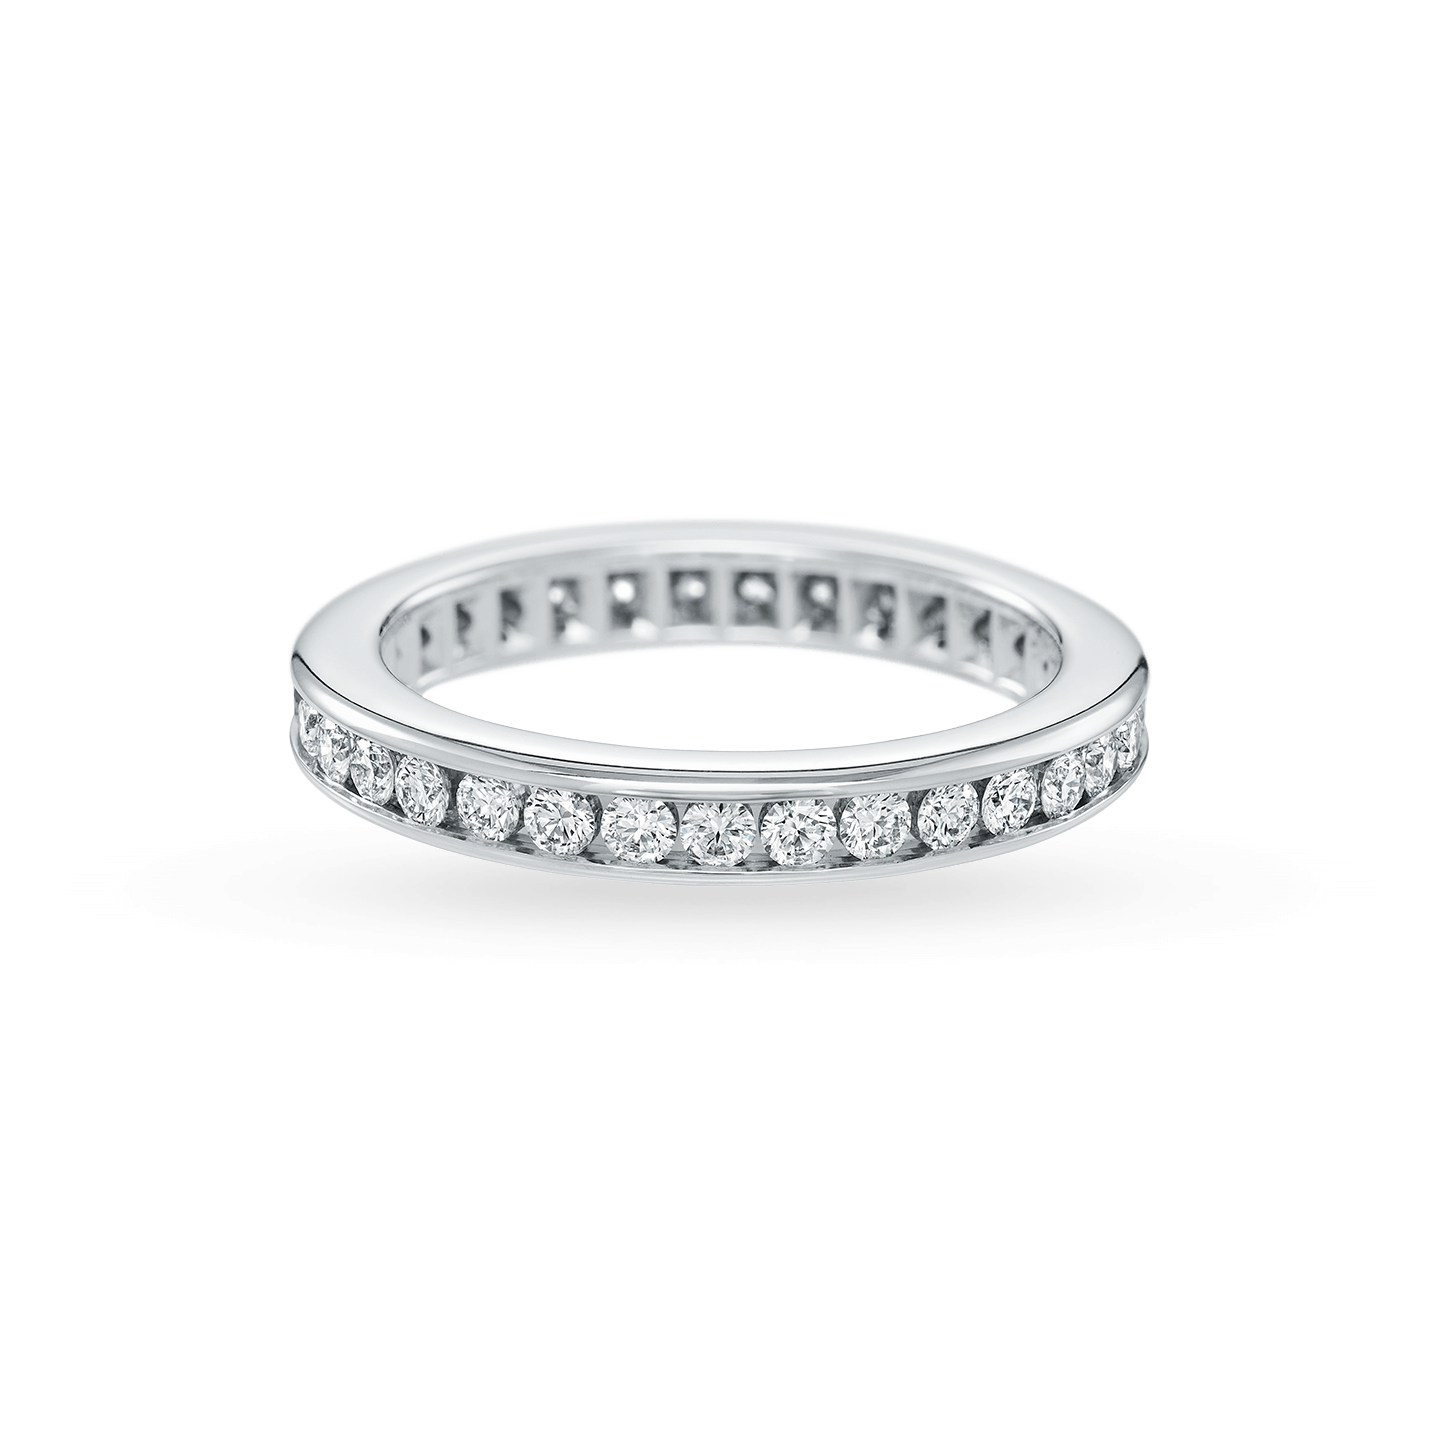 Channel-Set Round Brilliant Diamond Wedding Band, Product Image 2